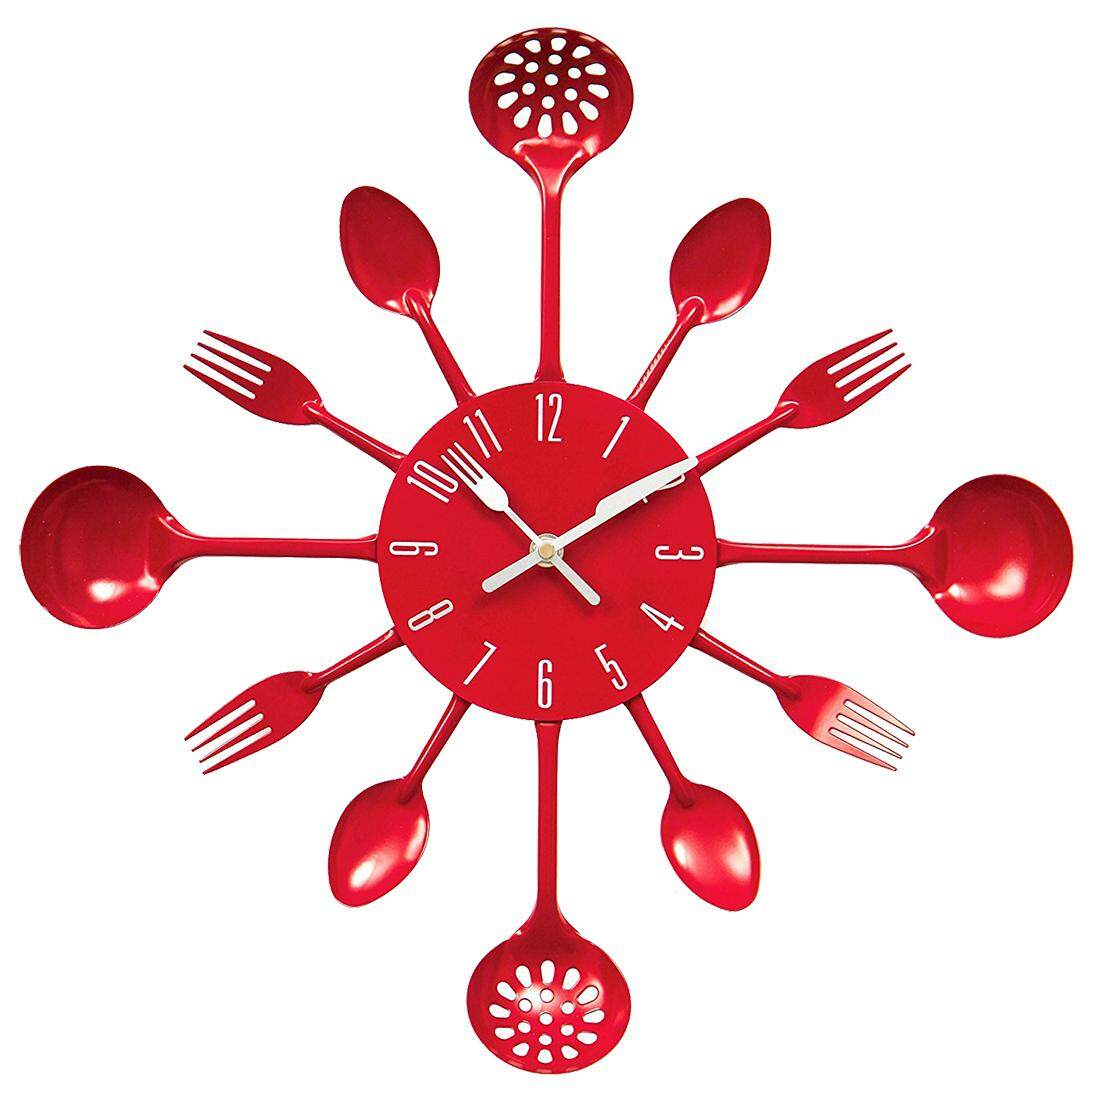 Housewares Cutlery Wall Clock - Red